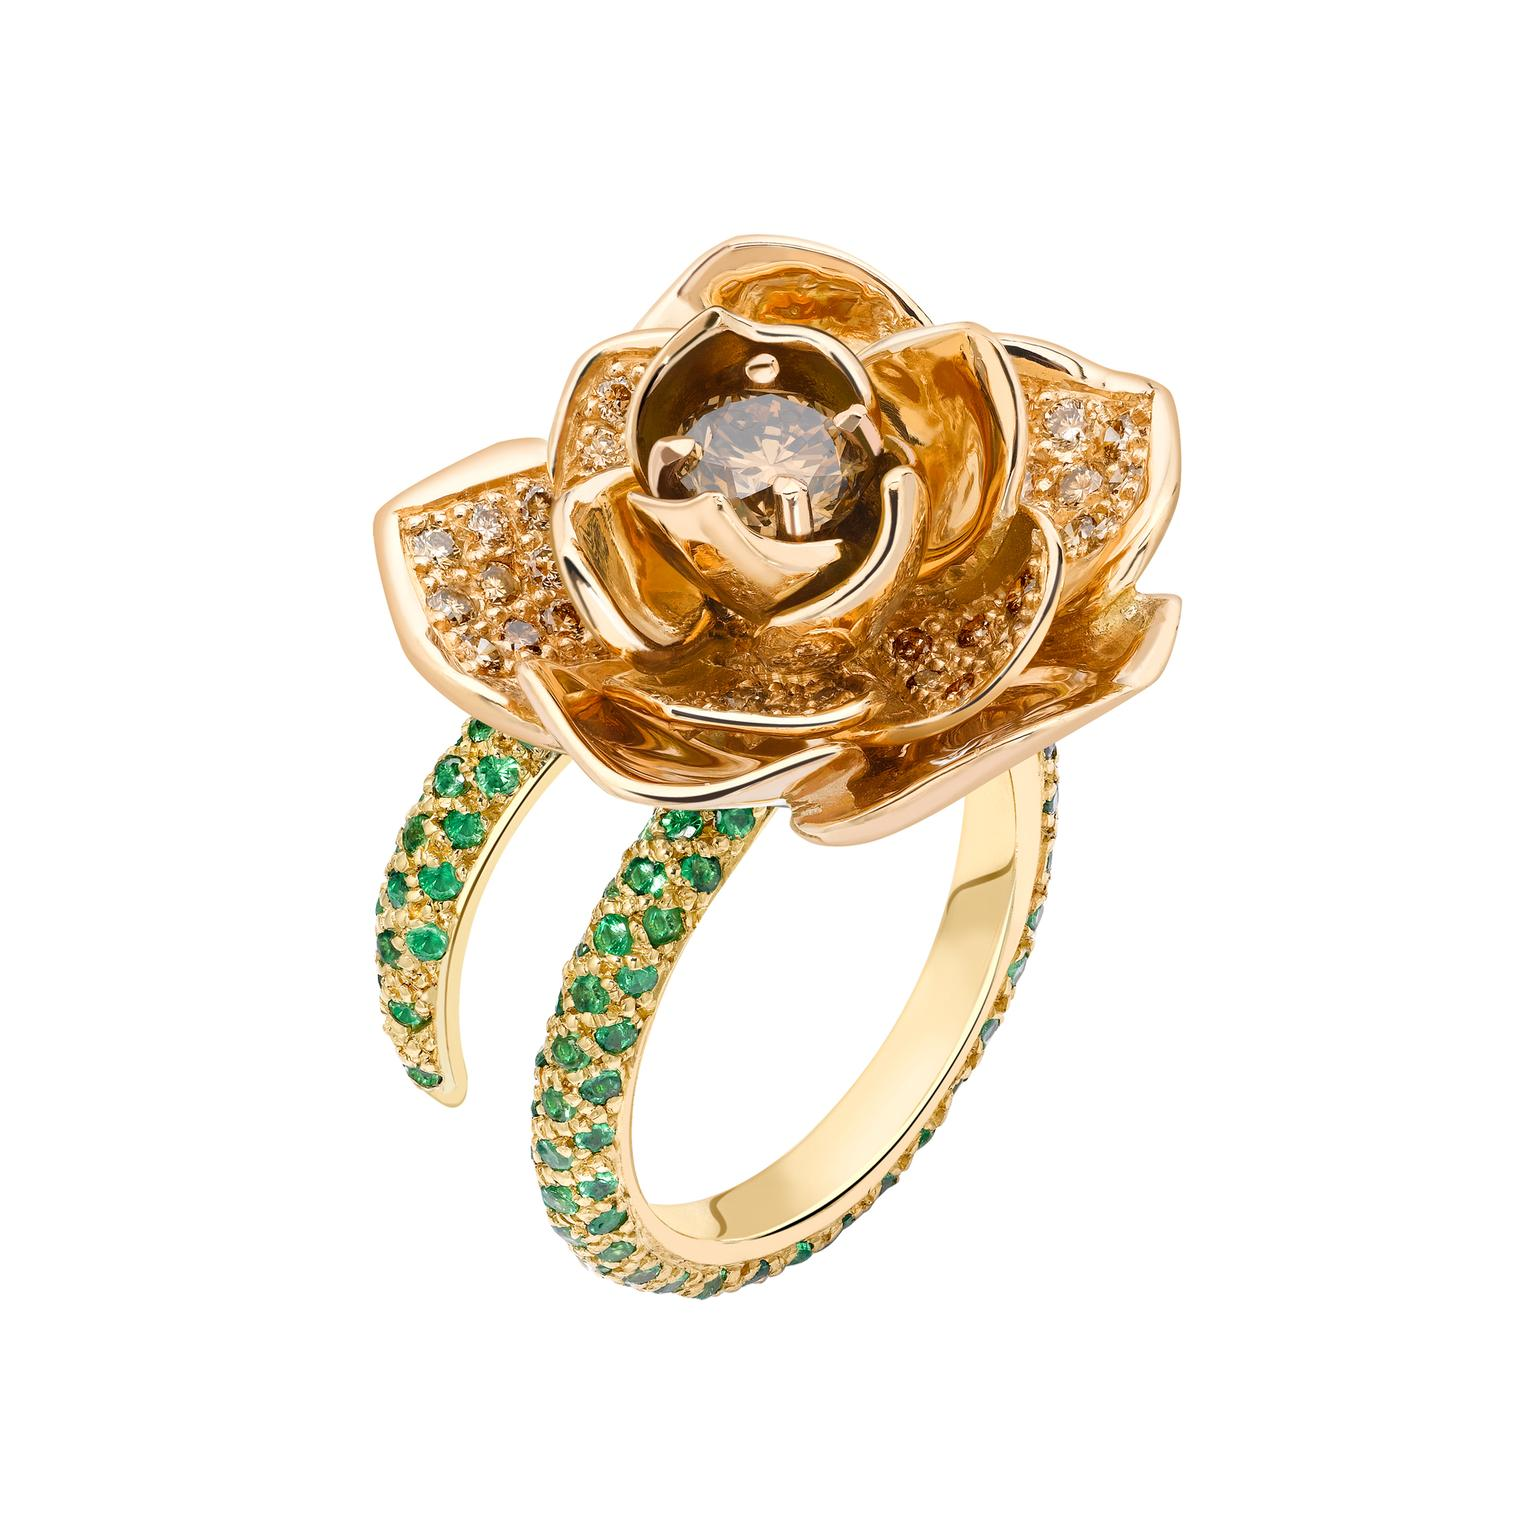 Ana de Costa Lotus Bud diamond and tsavorite ring